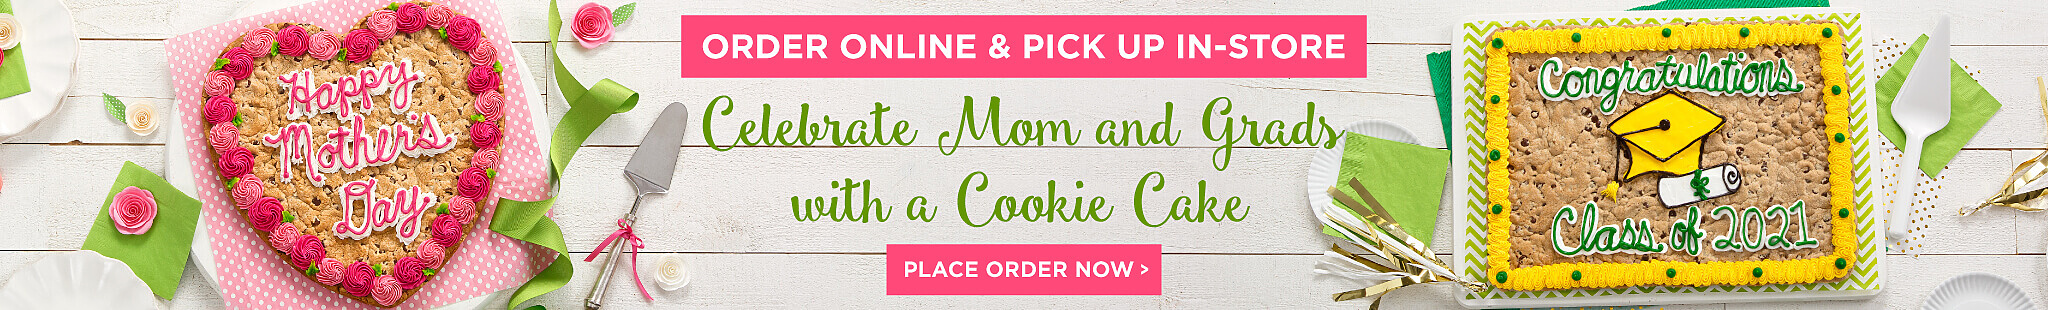 Celebrate Mom and Grads with a Cookie Cake. Place your order Now. Order online and pick up in store